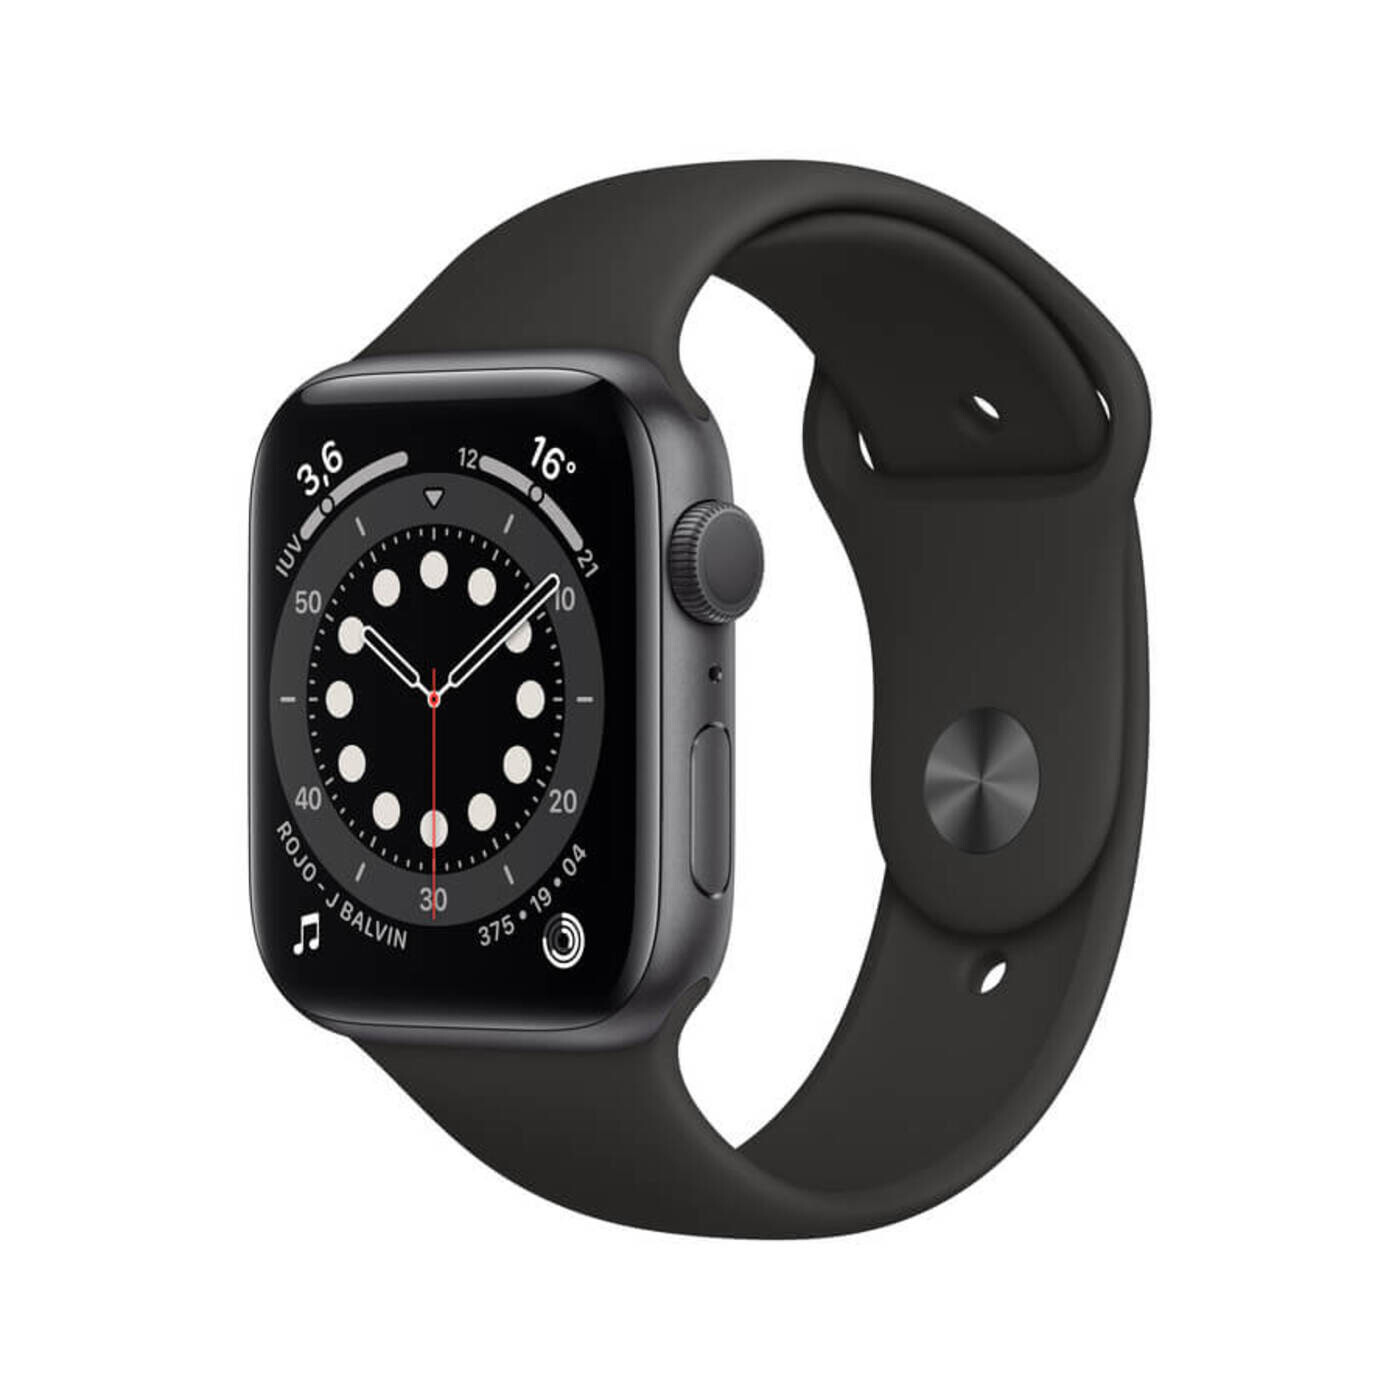 Apple Watch Series 6 - 44mm, Color Space Gray